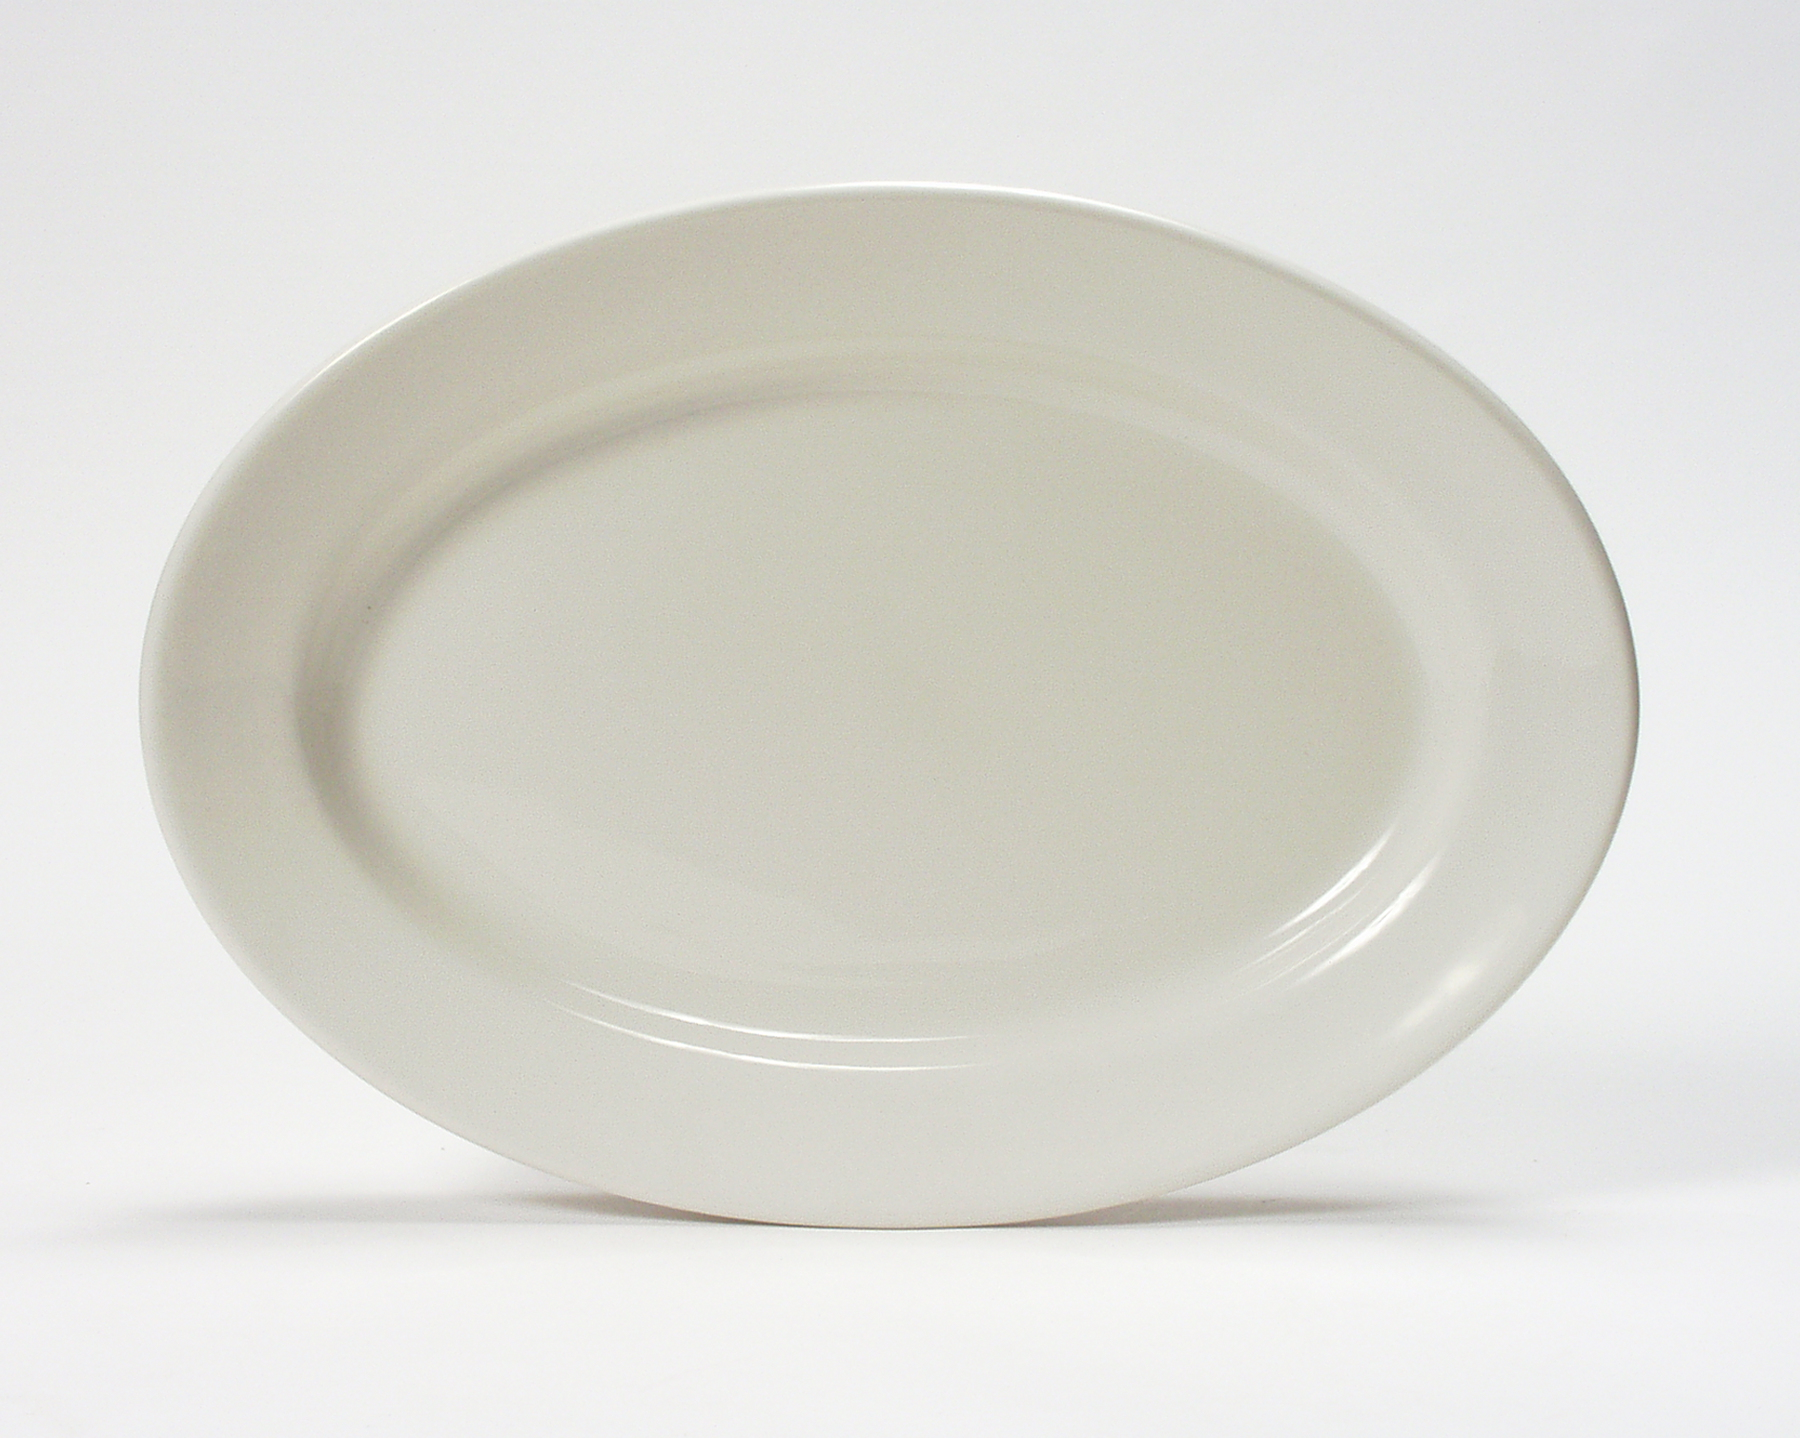 Item No TRE-043. Desc Oval Platter Size 14 1/8  X 10 1/4  Case Qty 12. List price/case $ 300.96. Our price/case $ 112.86 & Reno Dinnerware for Restaurants Catering and Banquet Service